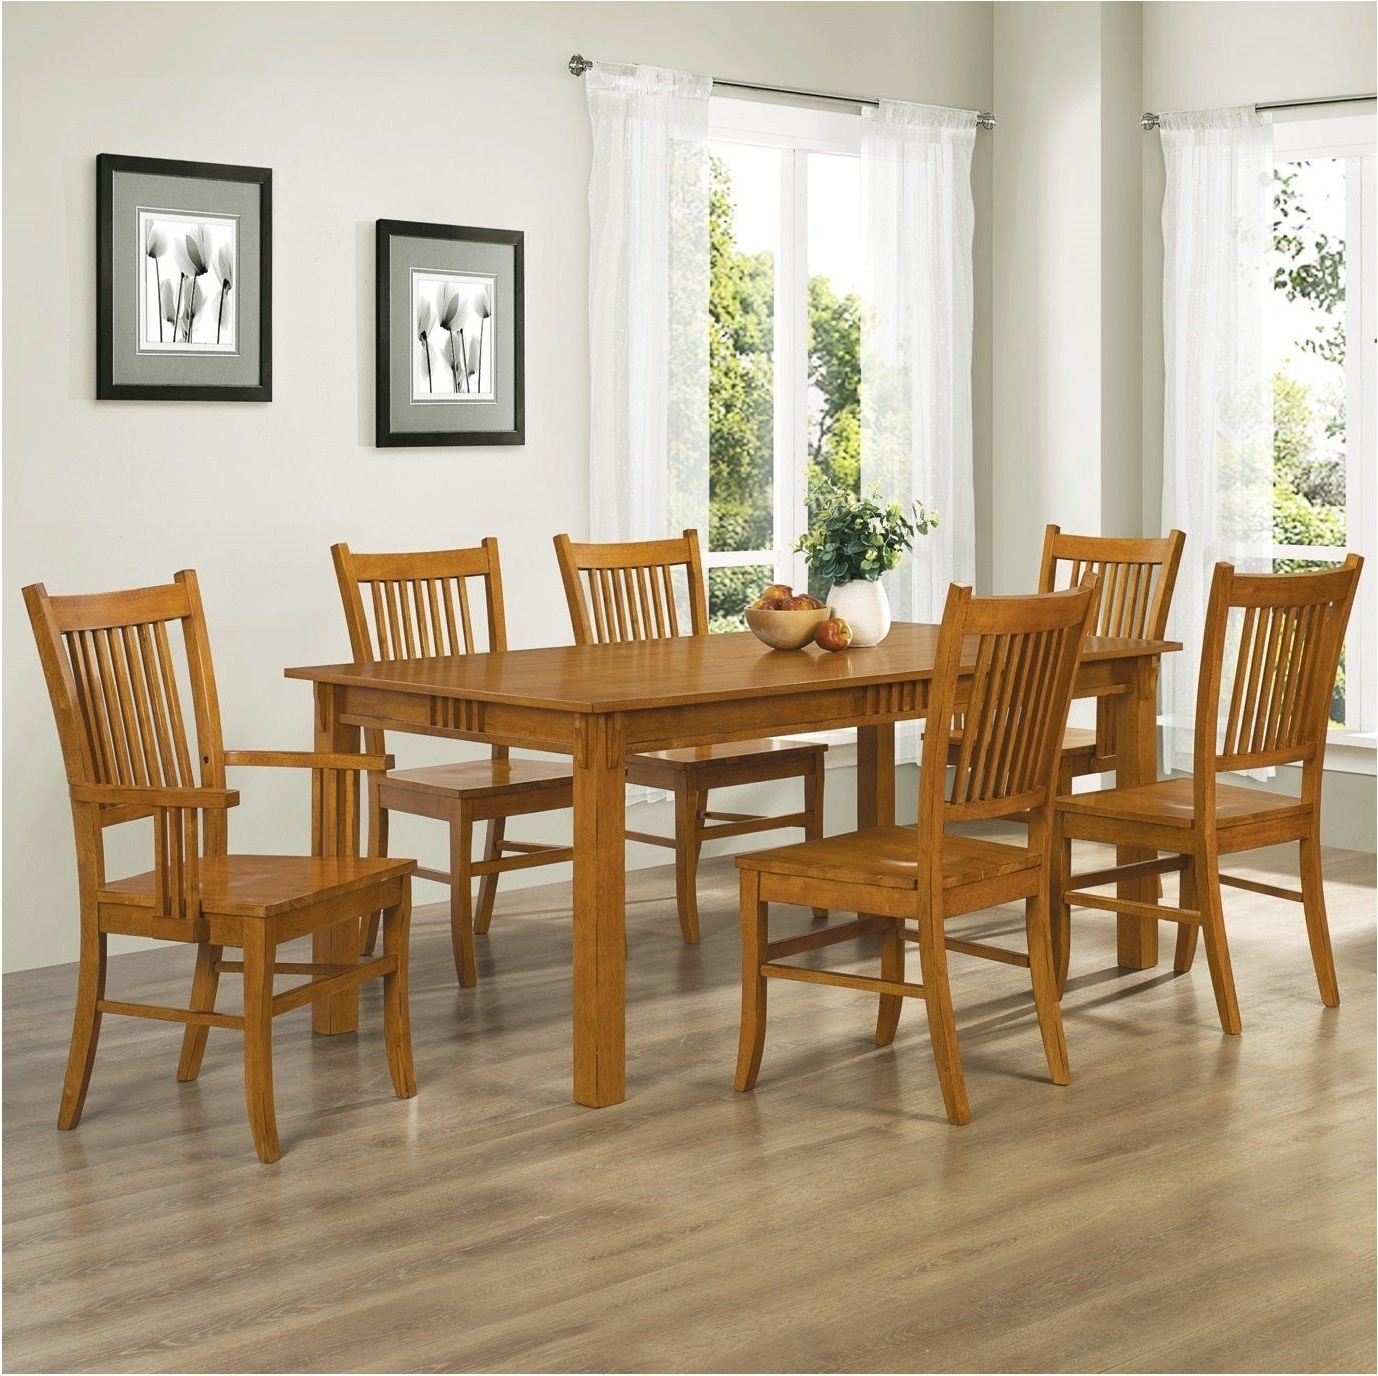 Excellently Elegant Black Dining Sets With 6 Chairs 23 Table And Within Most Popular 6 Seat Dining Tables (View 25 of 25)